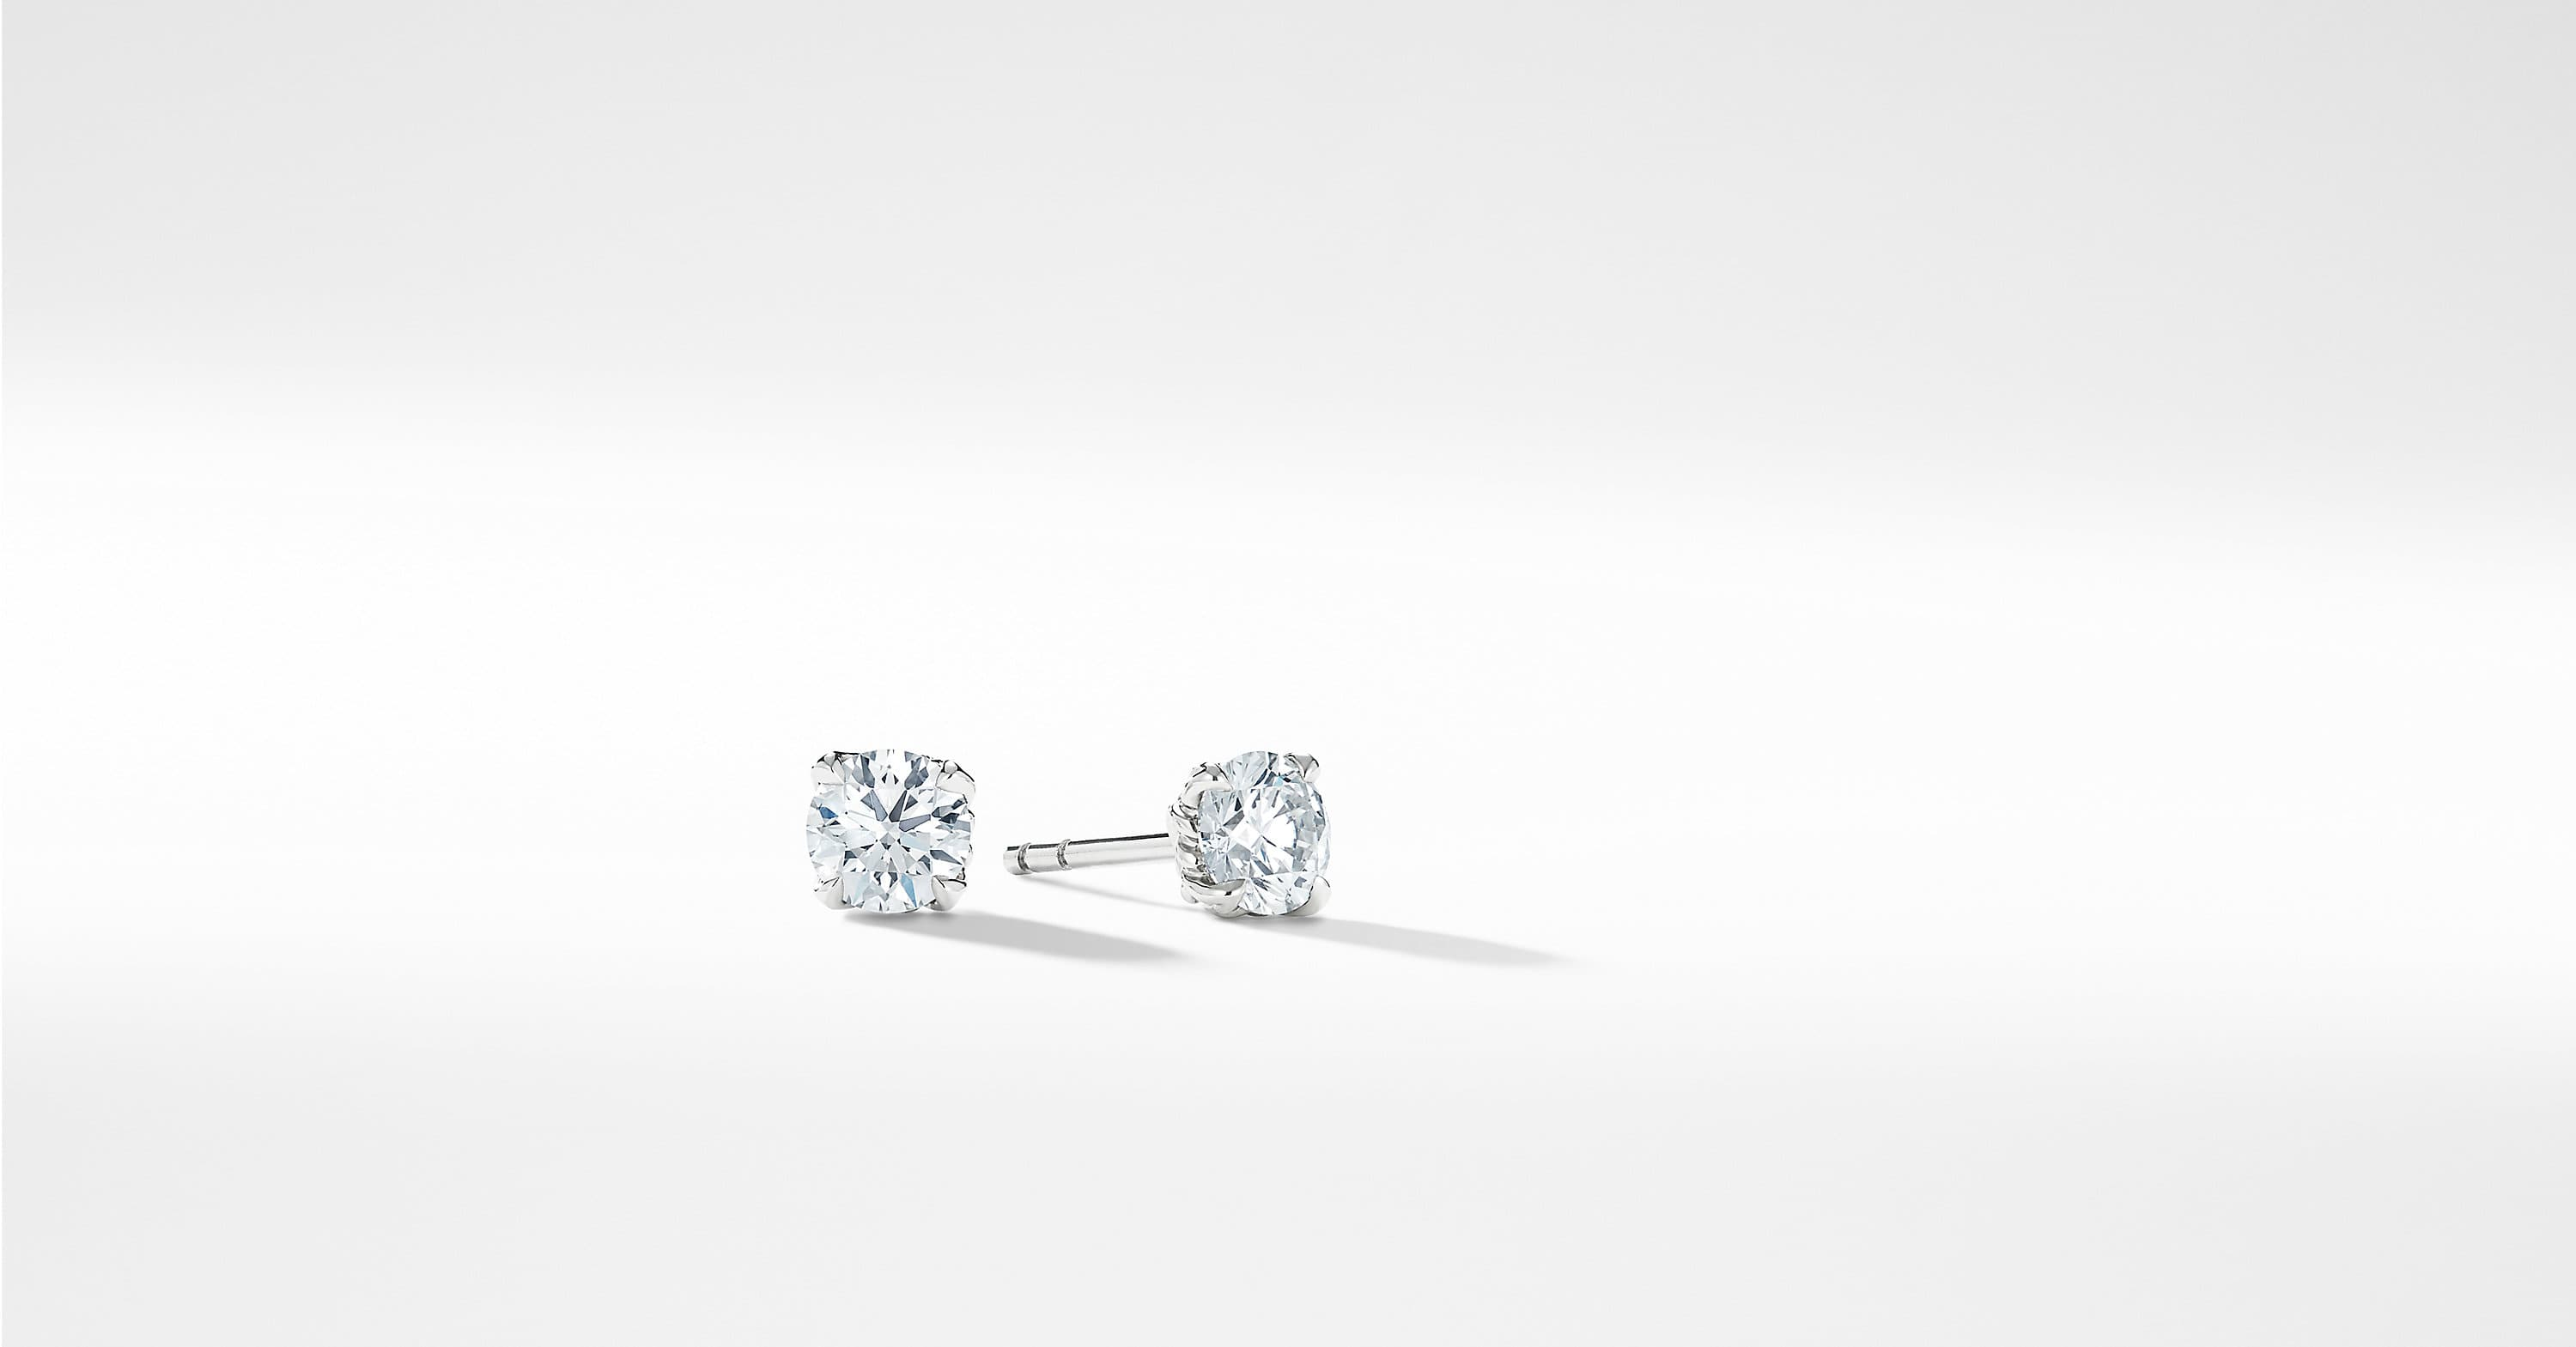 DY Diamond Stud Earrings in Platinum